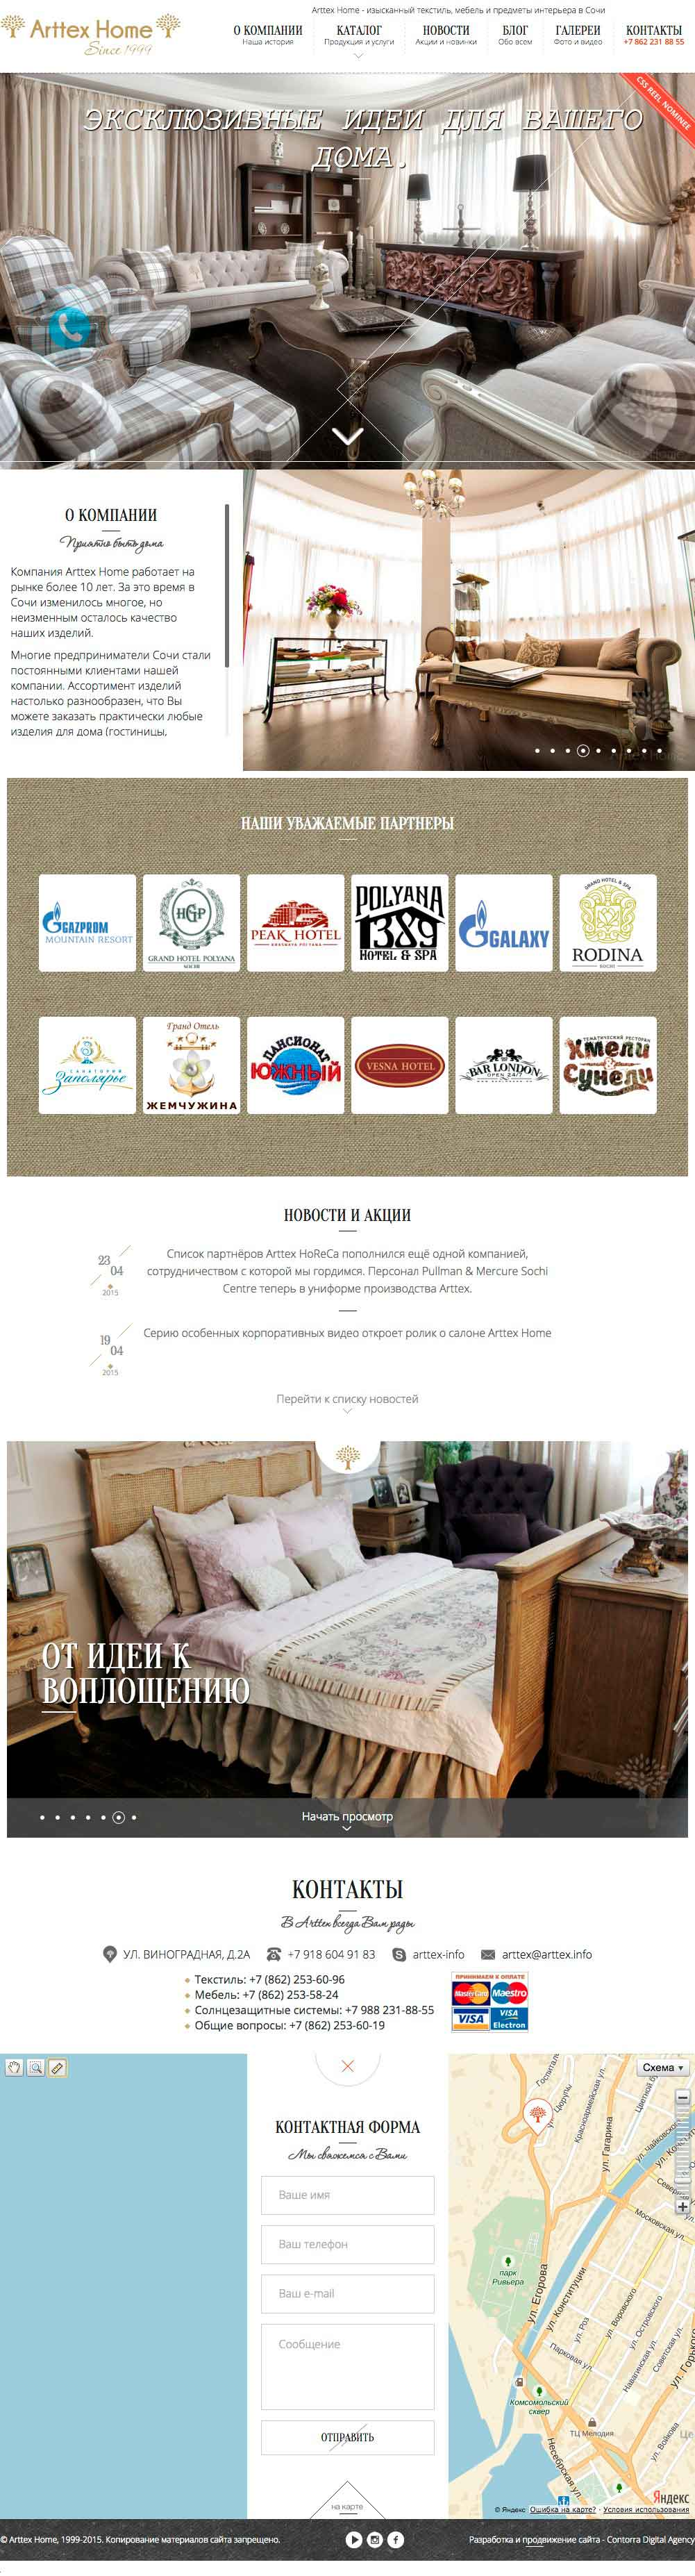 Arttex Home, whole main page